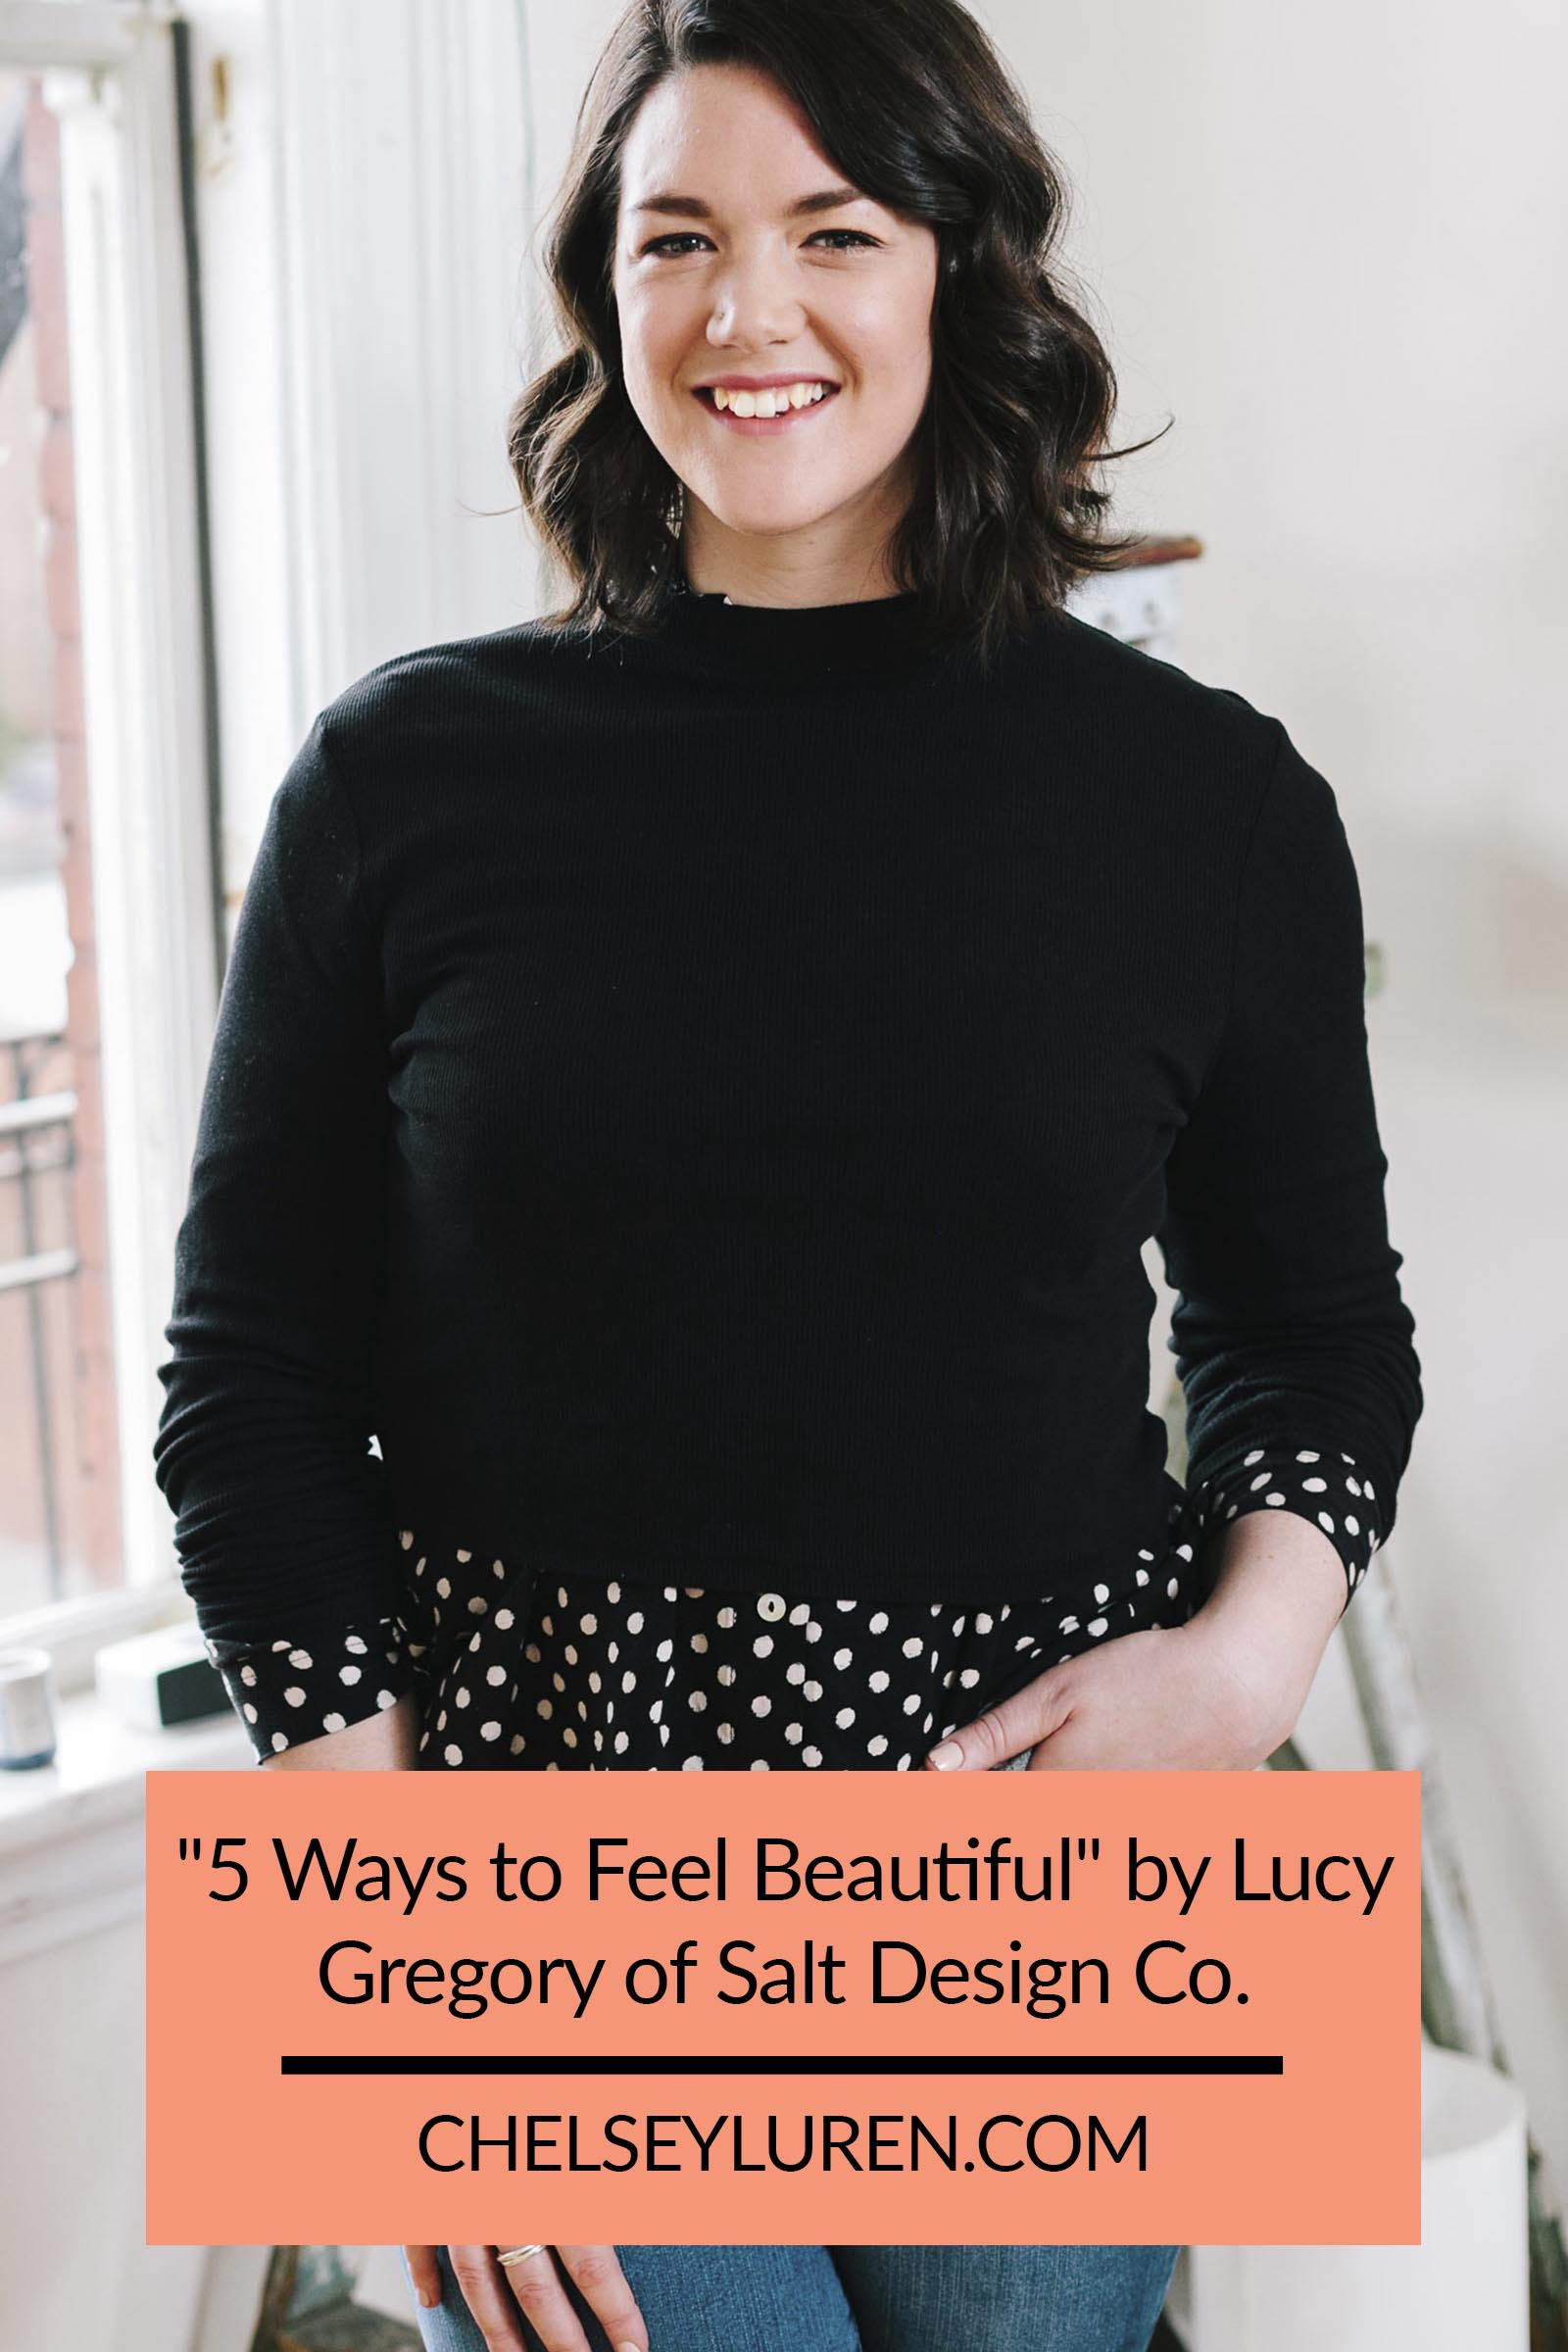 Chelsey Luren Portraits - %225 Ways to Feel Beautiful%22 by Lucy Gregory of Salt Design Co2.jpg